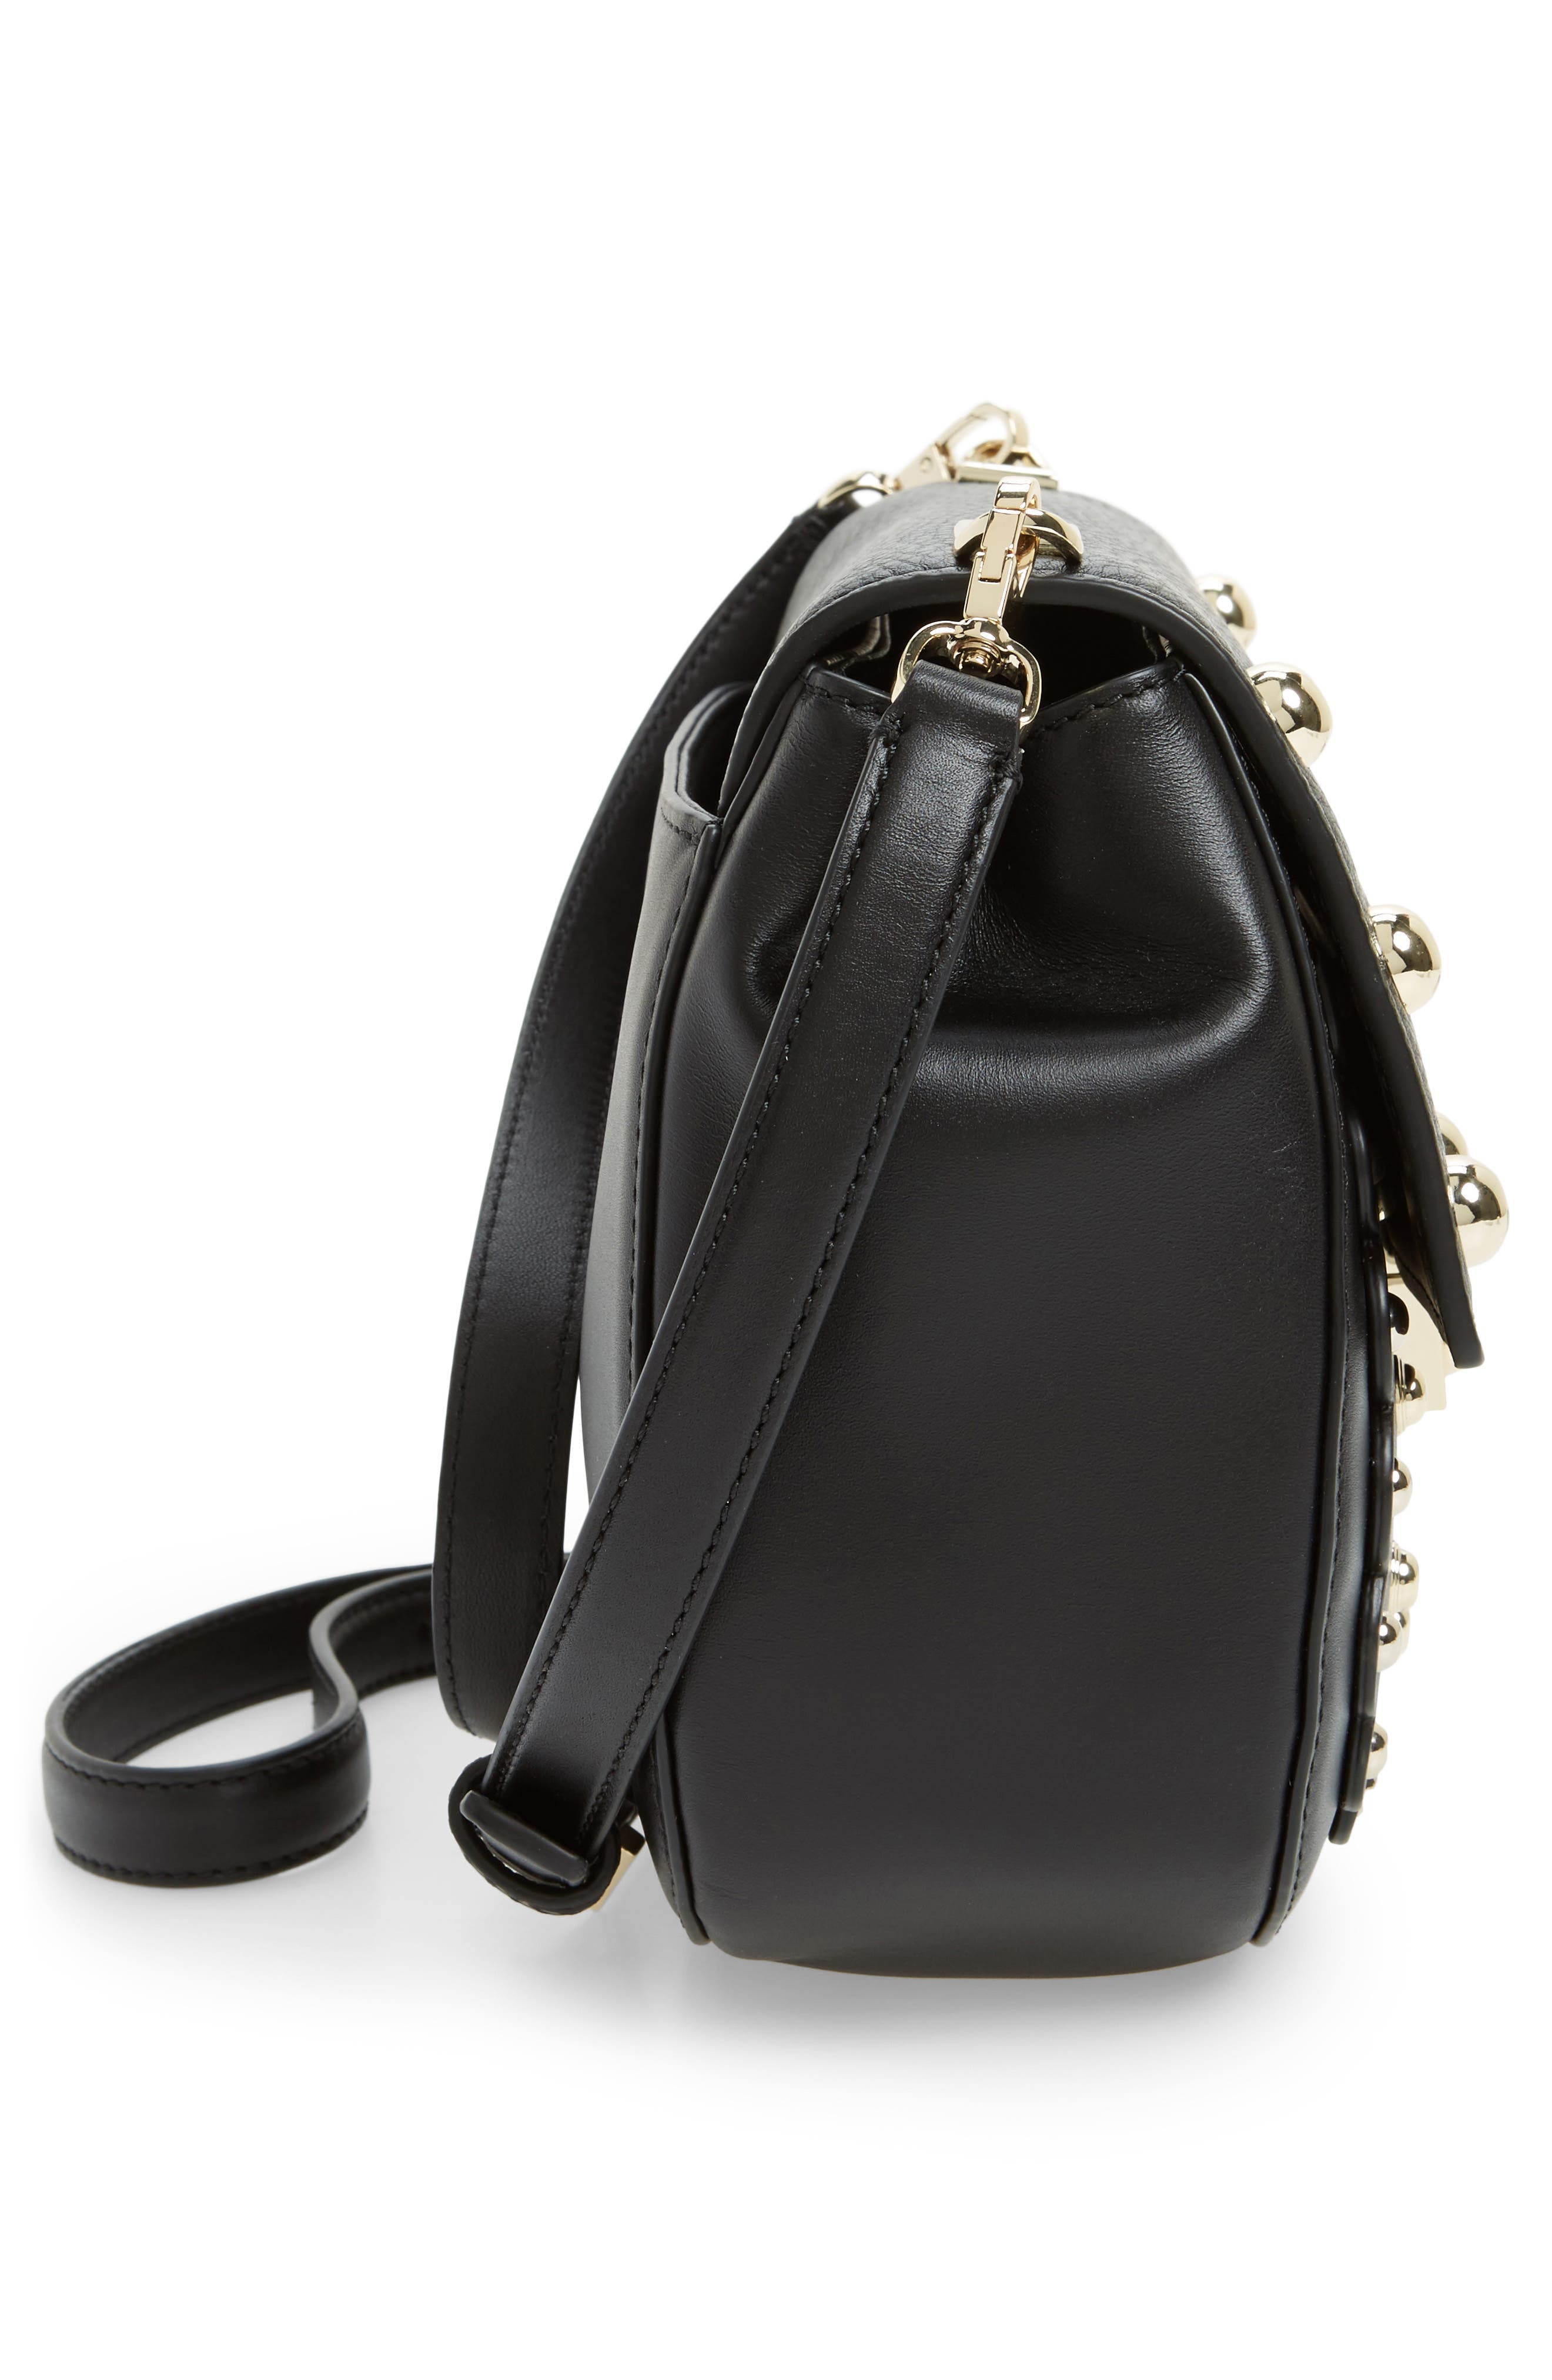 madison stewart street - byrdie studded leather crossbody bag,                             Alternate thumbnail 5, color,                             001